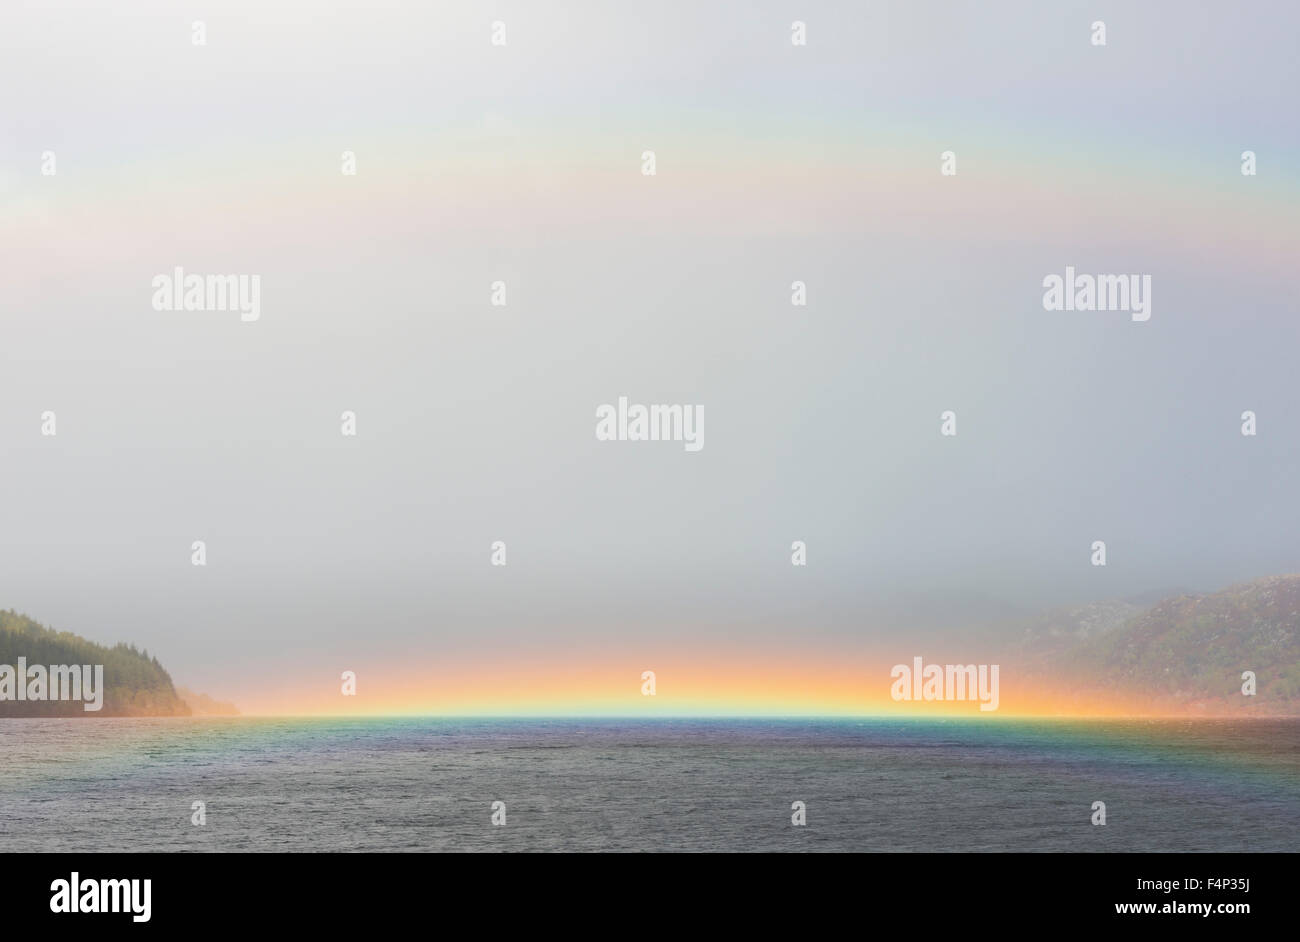 Rainbow on water on Loch Ness in Scotland - Stock Image